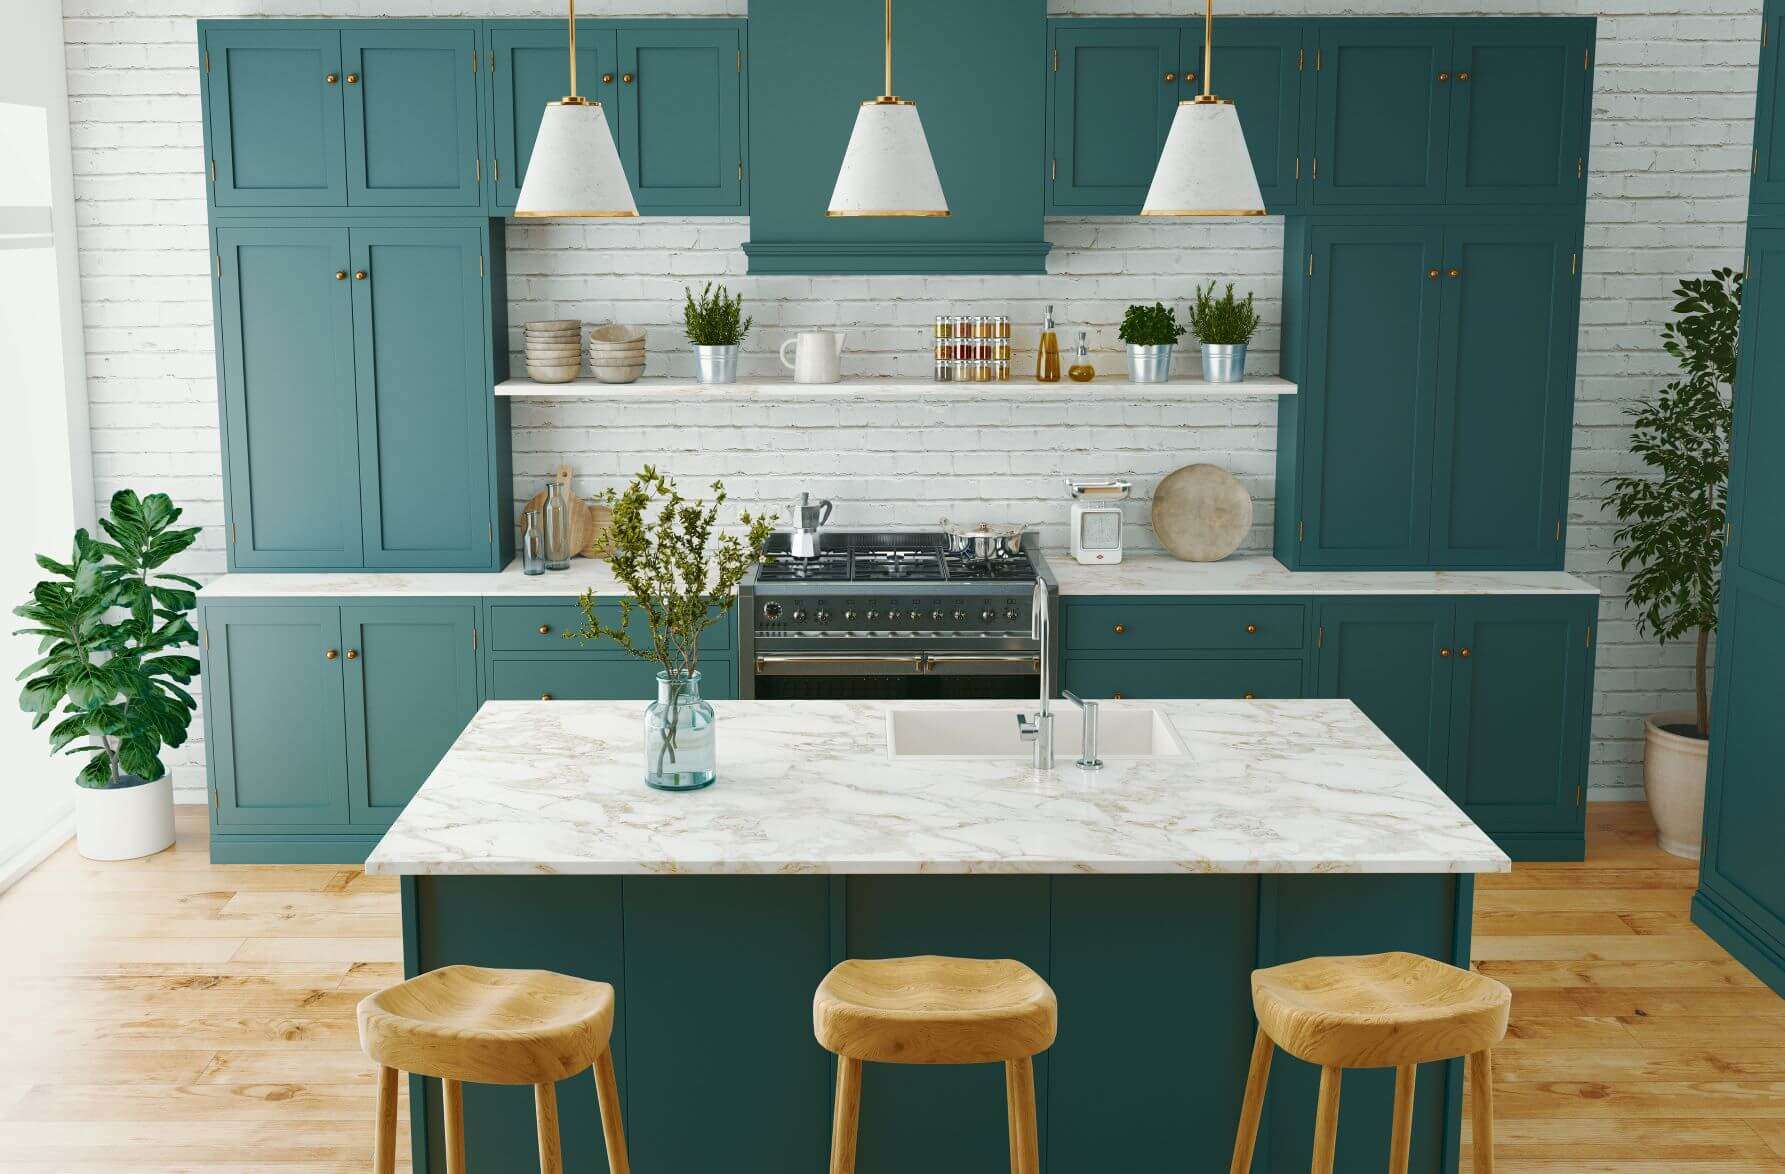 Five ways to make your old kitchen shine again